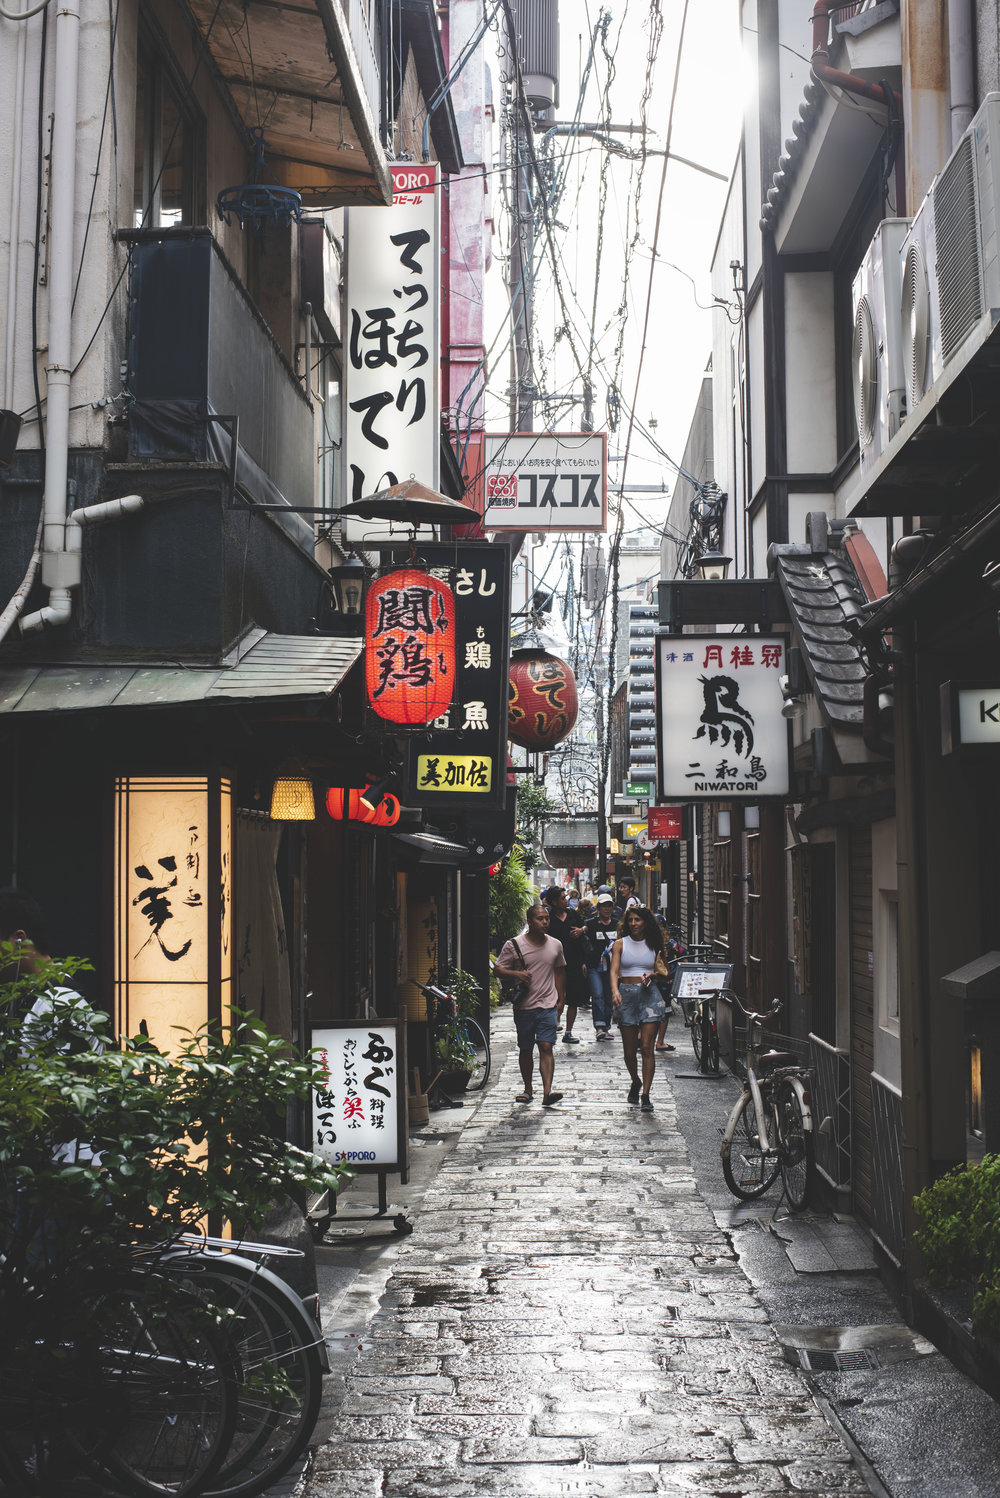 Streets with atmosphere in Osaka